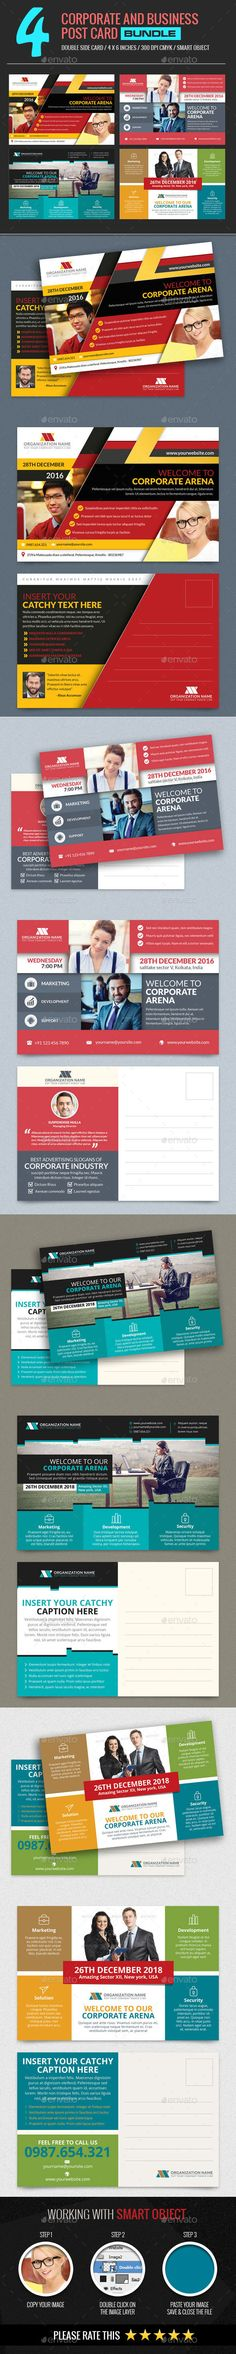 4 In 1 Corporate and Business Post Card Design Template Bundle - Cards & Invites Template PSD. Download here: https://graphicriver.net/item/4-in-1-corporate-and-business-post-card-bundle/17390479?ref=yinkira